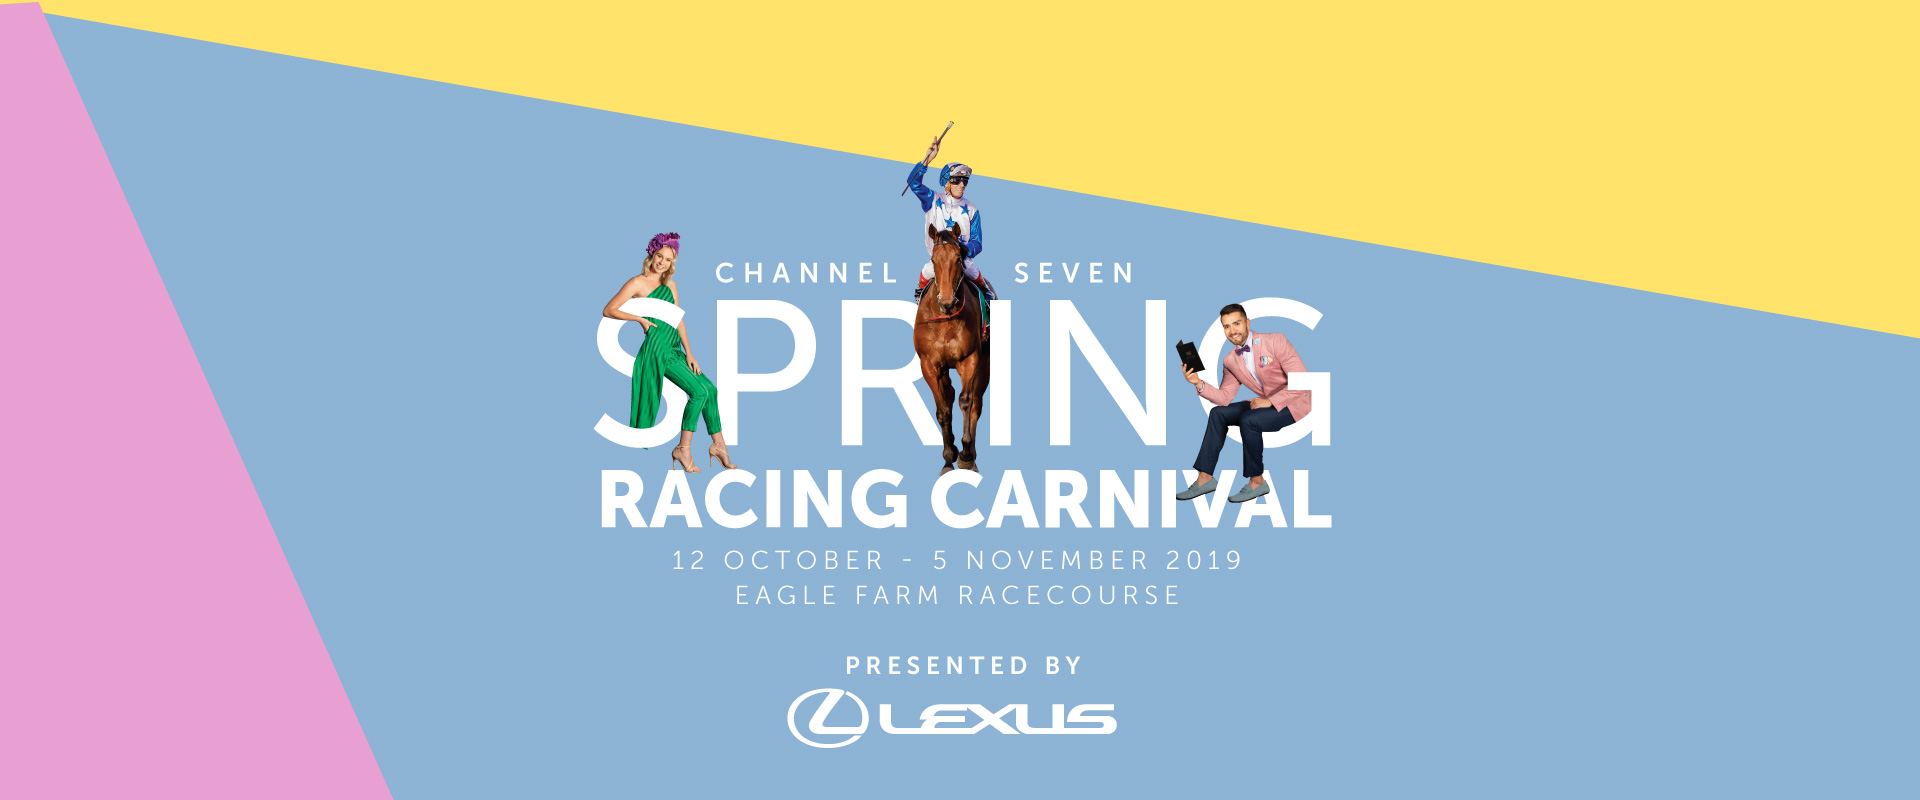 Spring Racing Carnival Page Banner